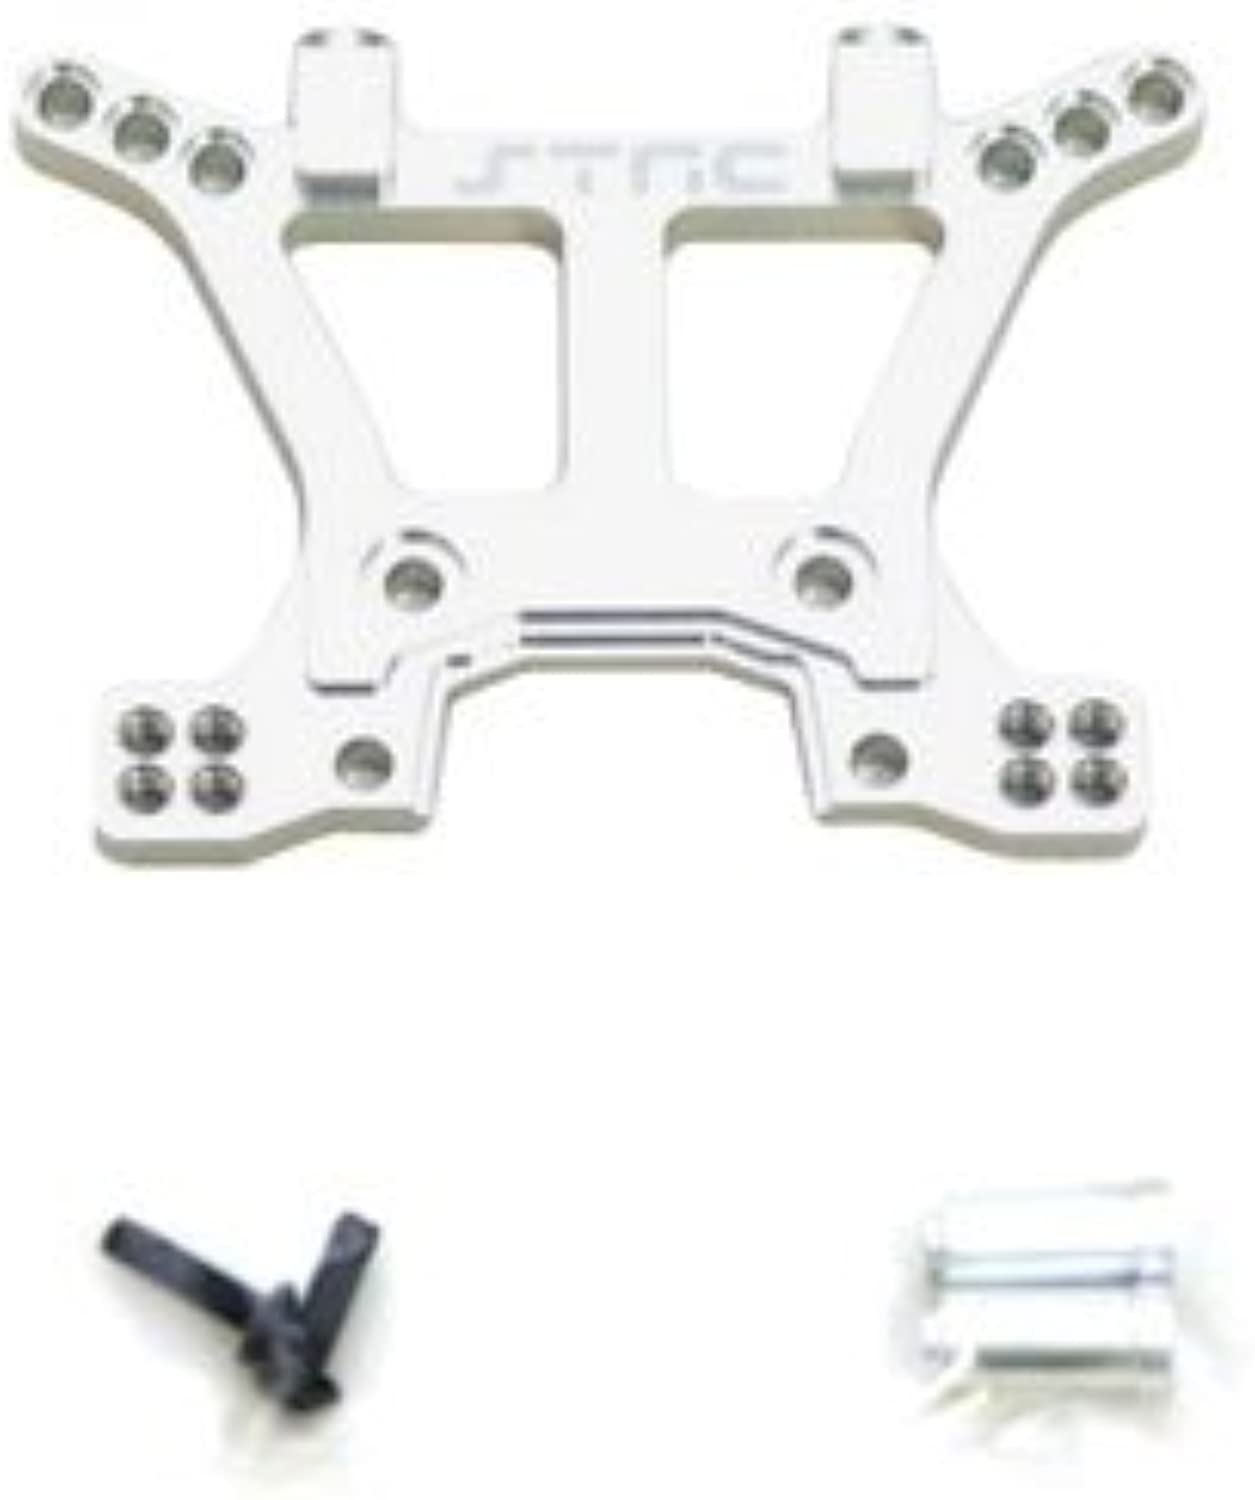 ST Racing Concepts ST6839S Aluminum Heavy Duty Front Shock Tower for Slash 4x4, Silver